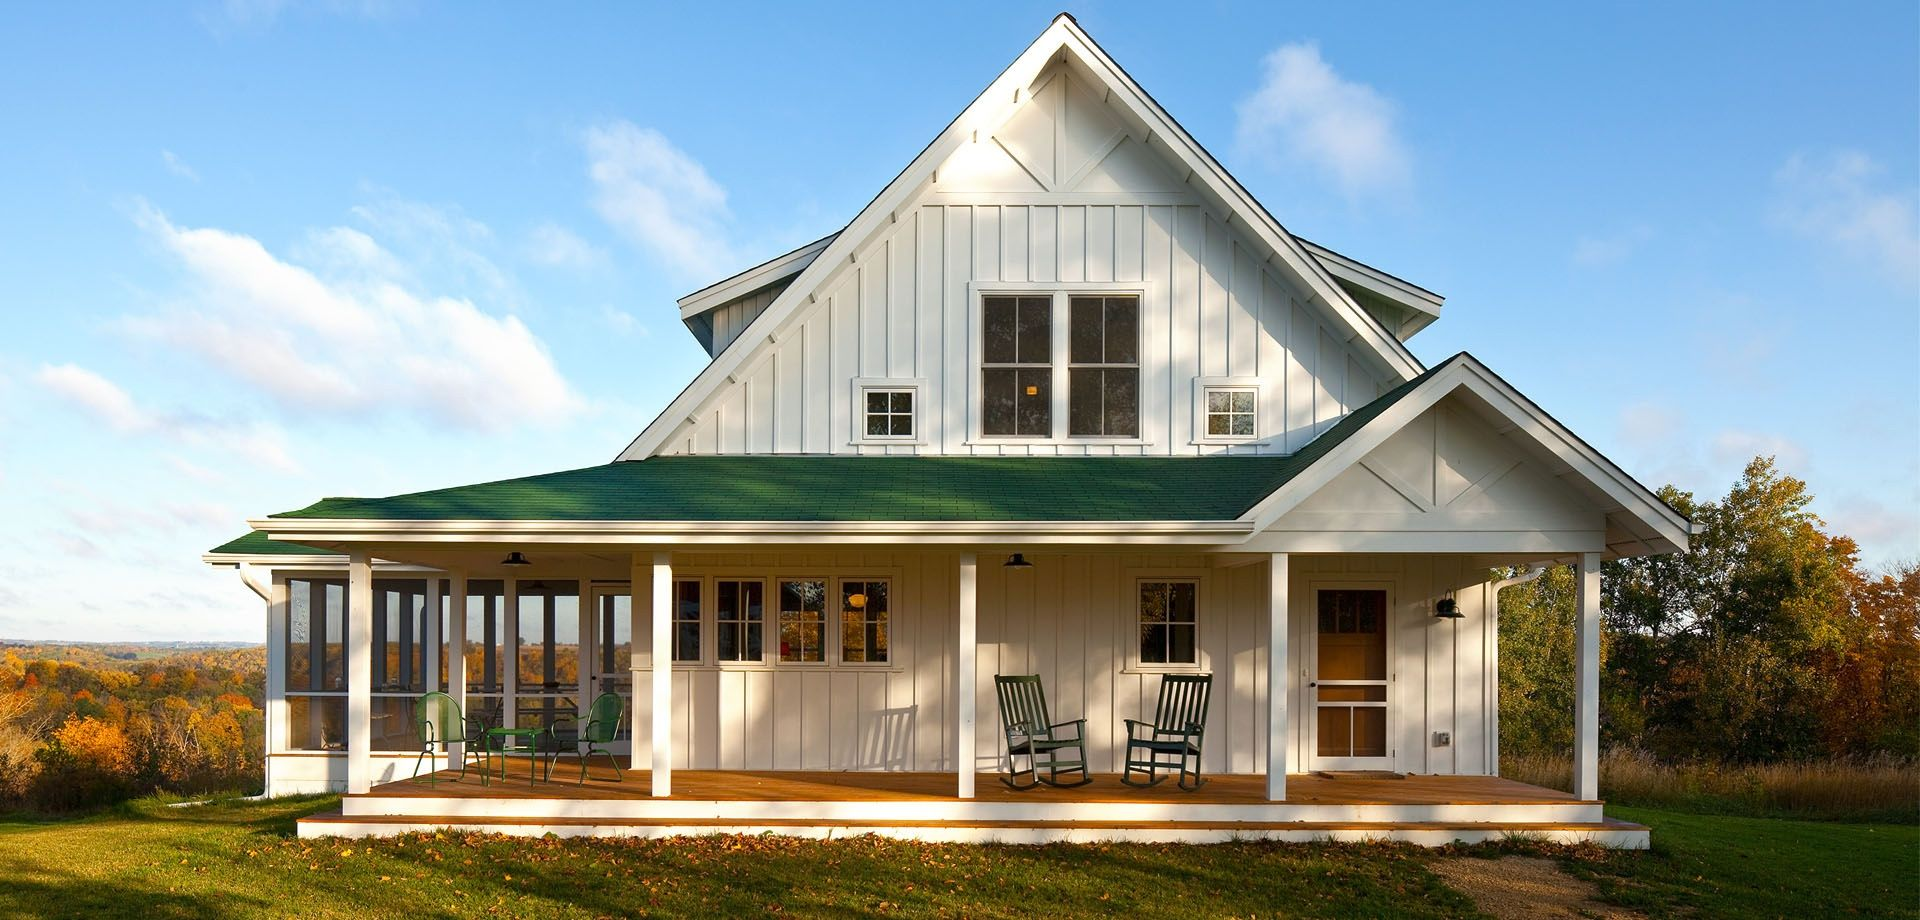 Holly ridge farmhouse we like the roofline shed dormers for Farmhouse style siding